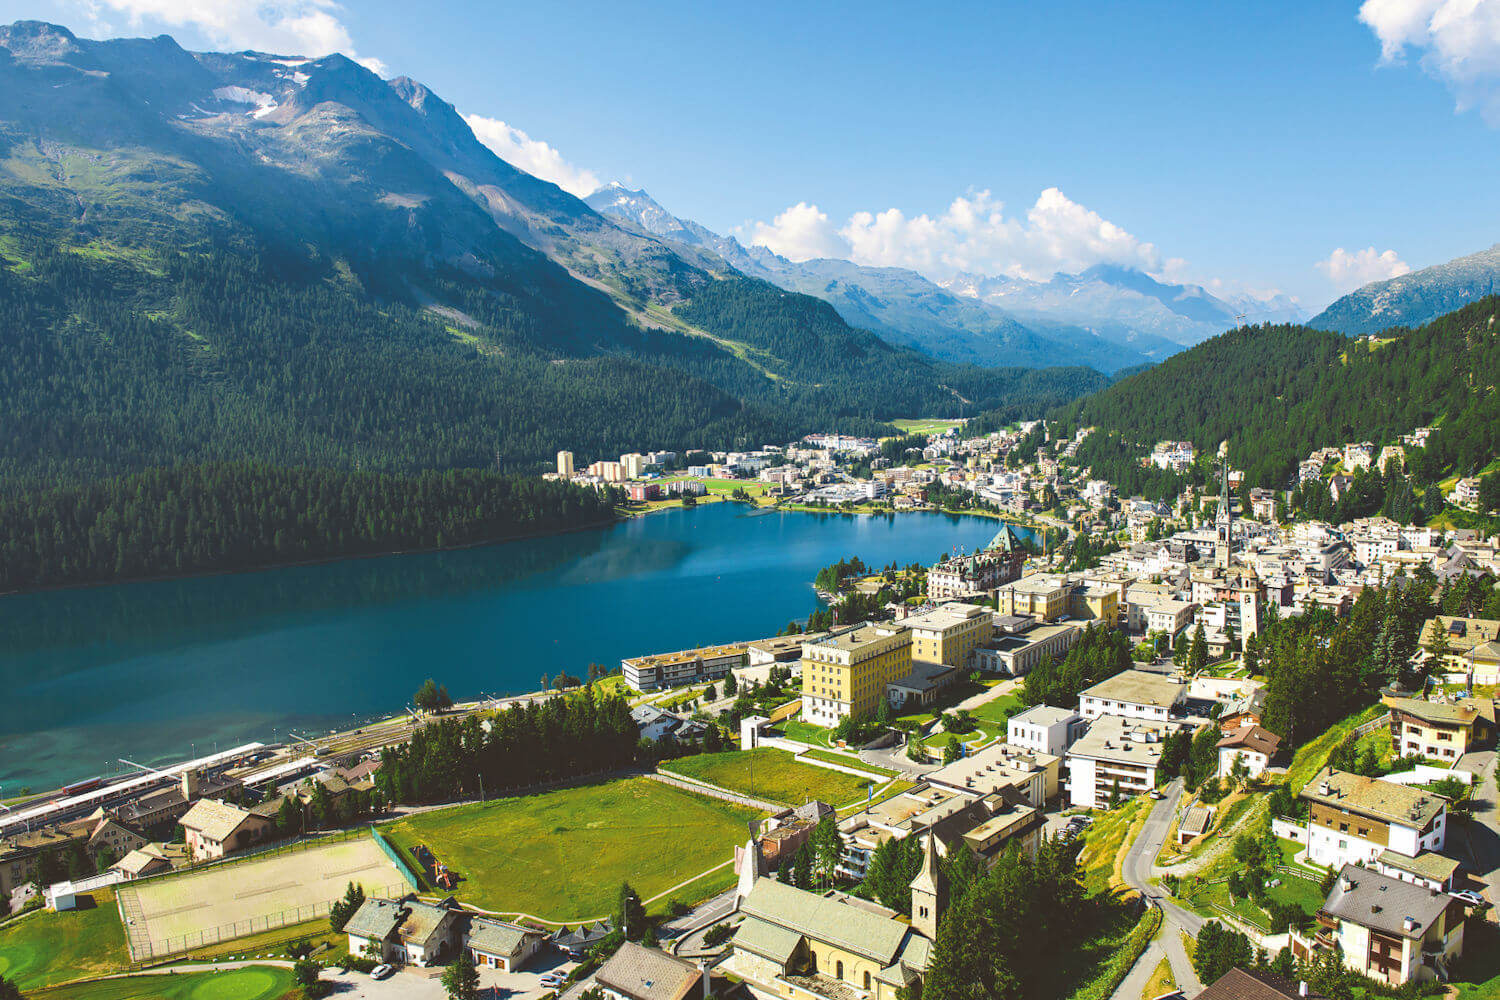 aerial view of St Moritz